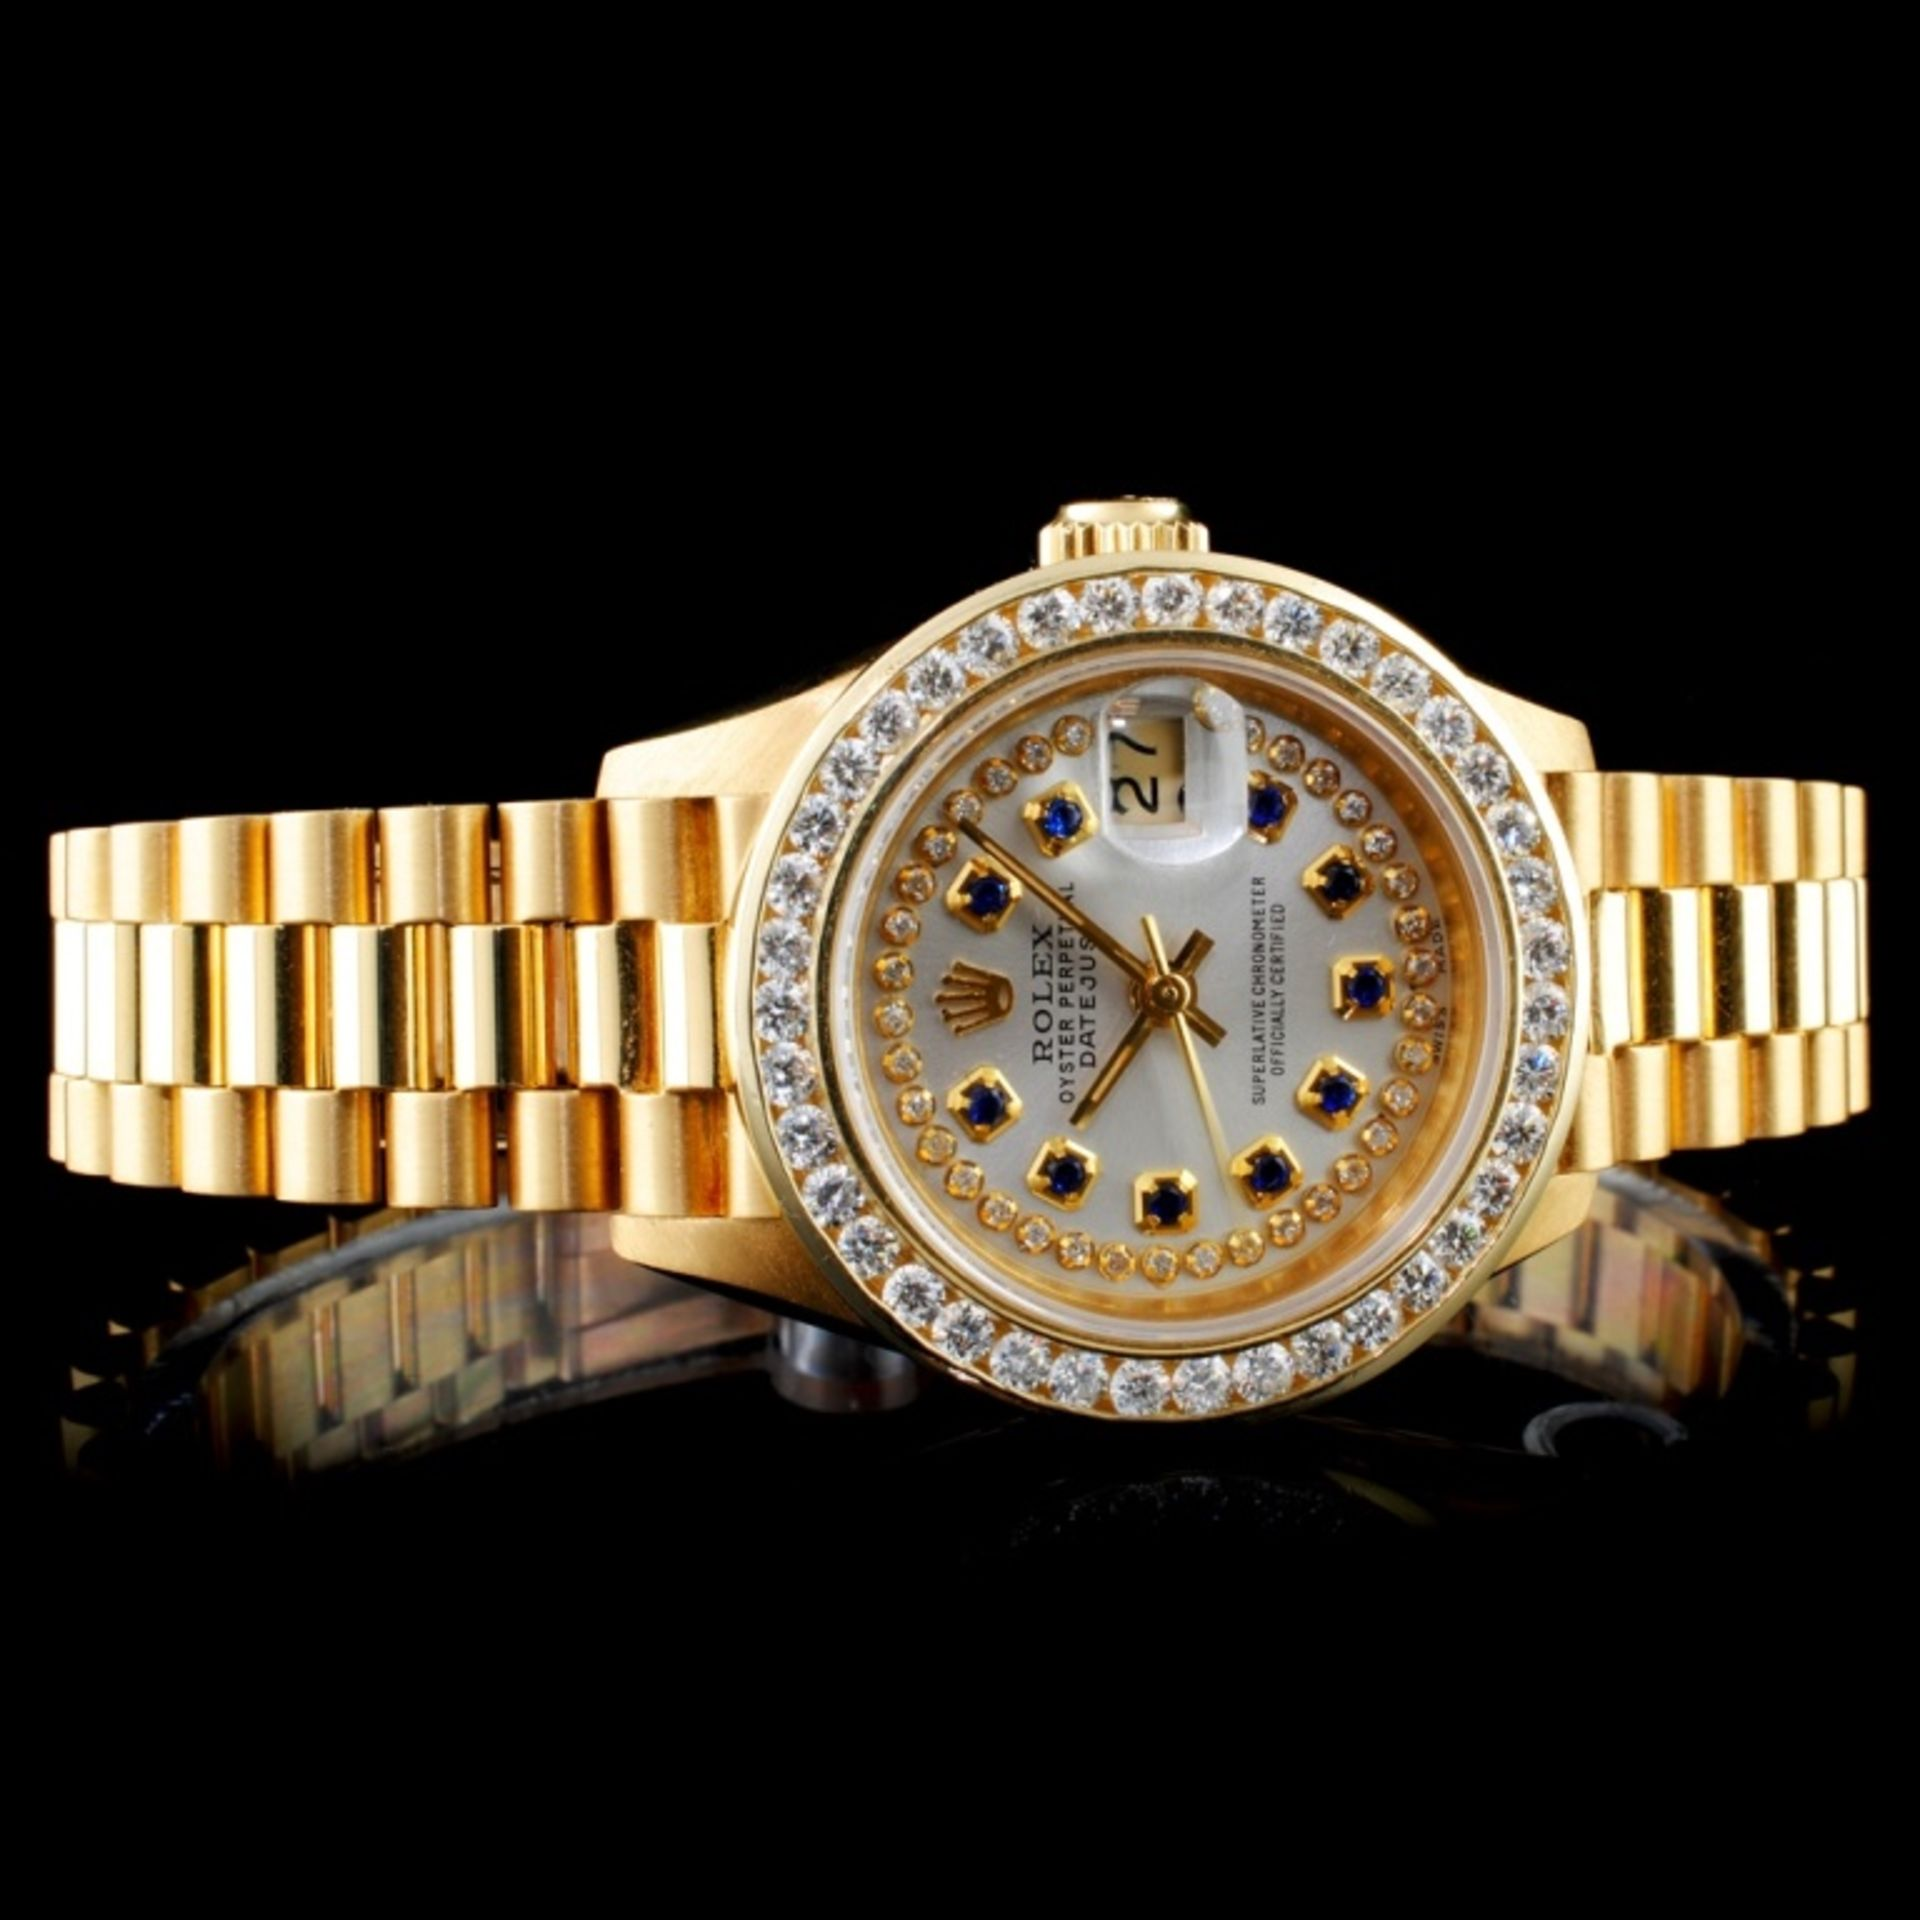 Rolex Presidential Diamond Ladies Watch - Image 2 of 6